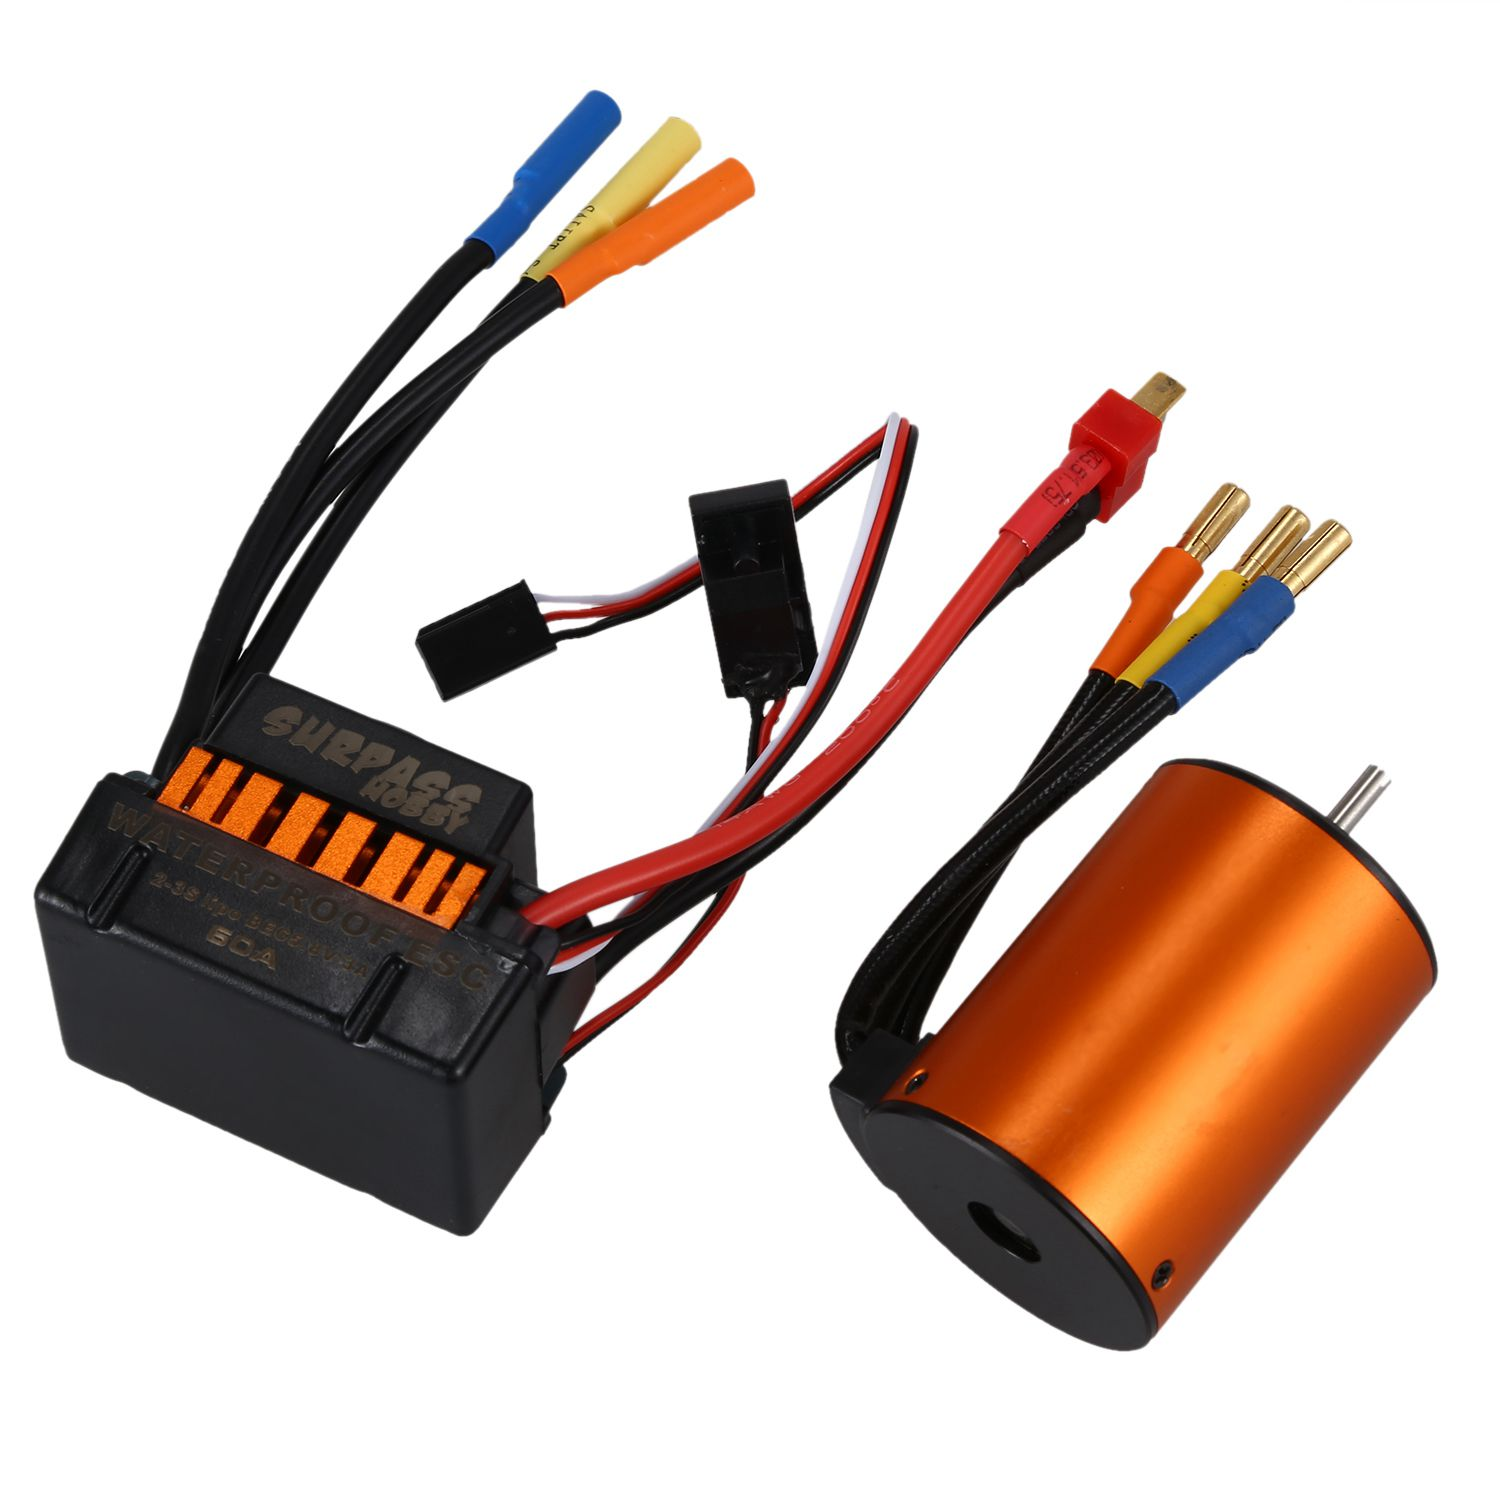 SURPASS HOBBY Upgrade Waterproof 3650 4300KV Brushless Motor with 60A ESC for 1/10 RC Car